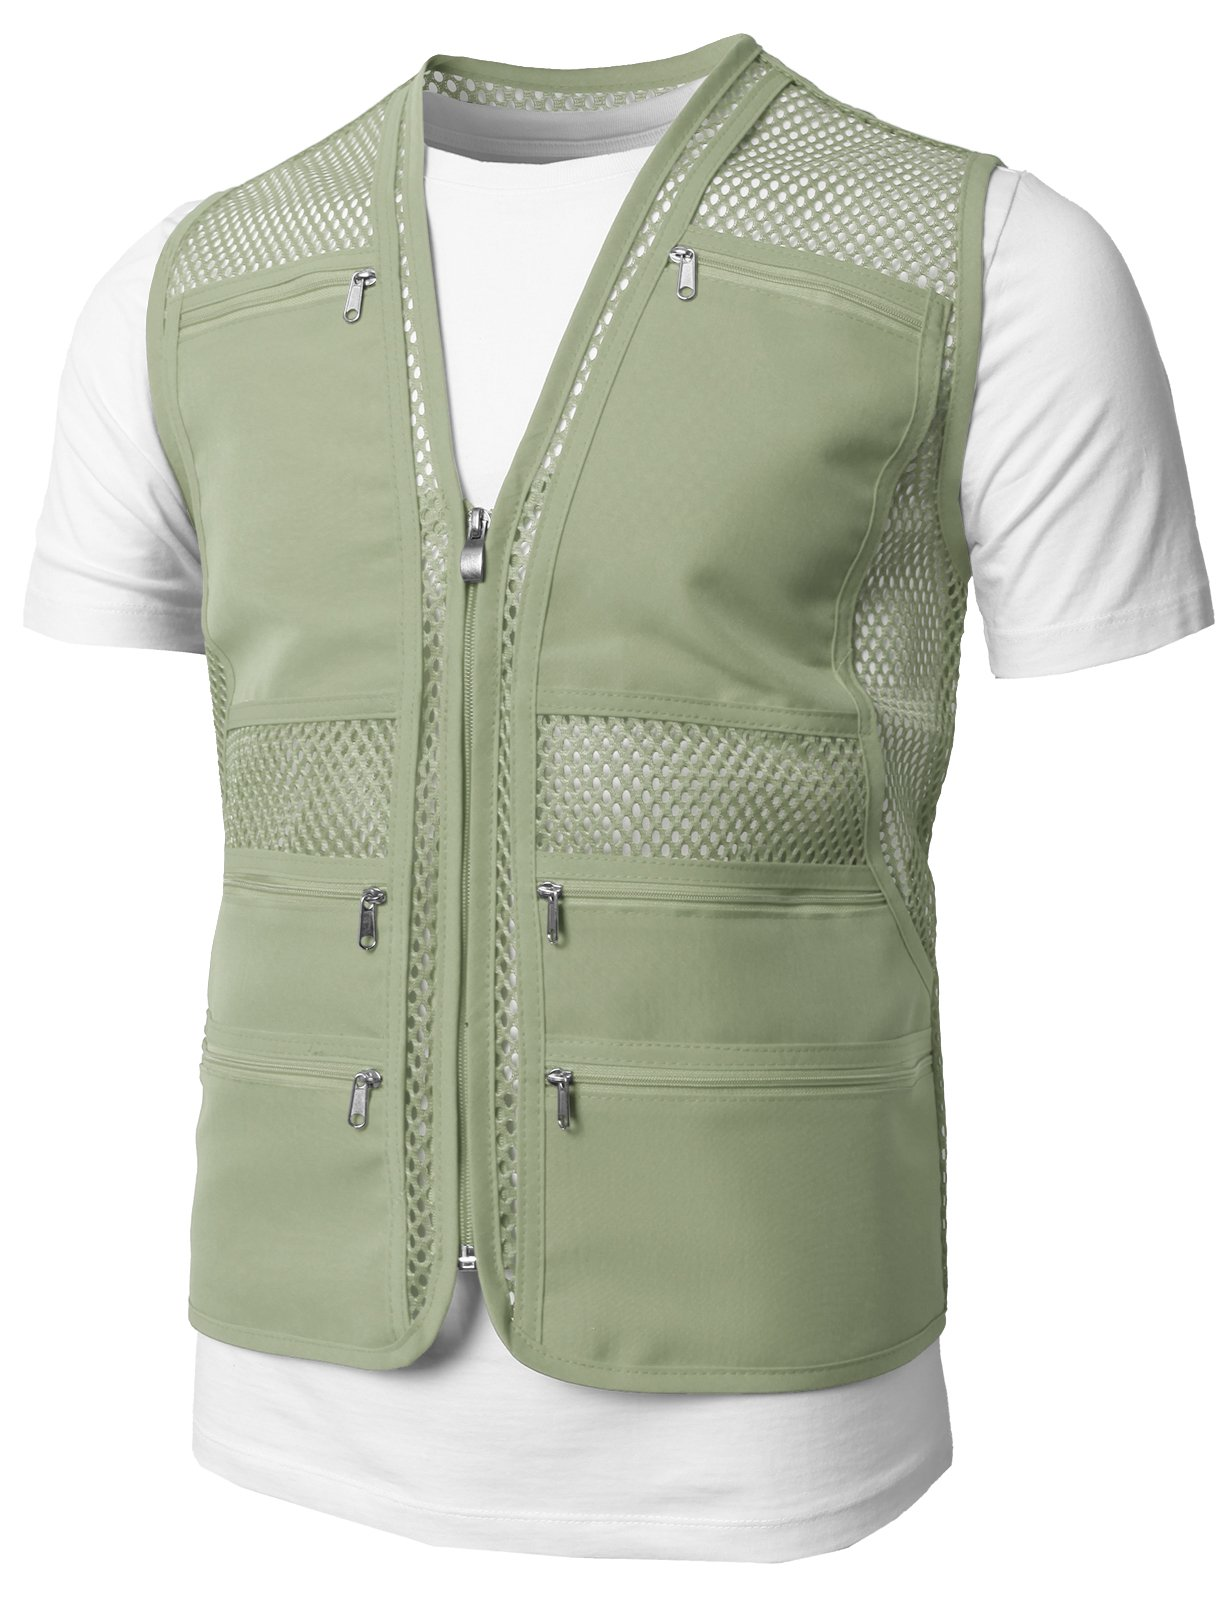 H2H Mens Casual Work Utility Hunting Travels Sports Mesh Vest With Pockets Khaki US XXL/Asia 3XL (KMOV086)